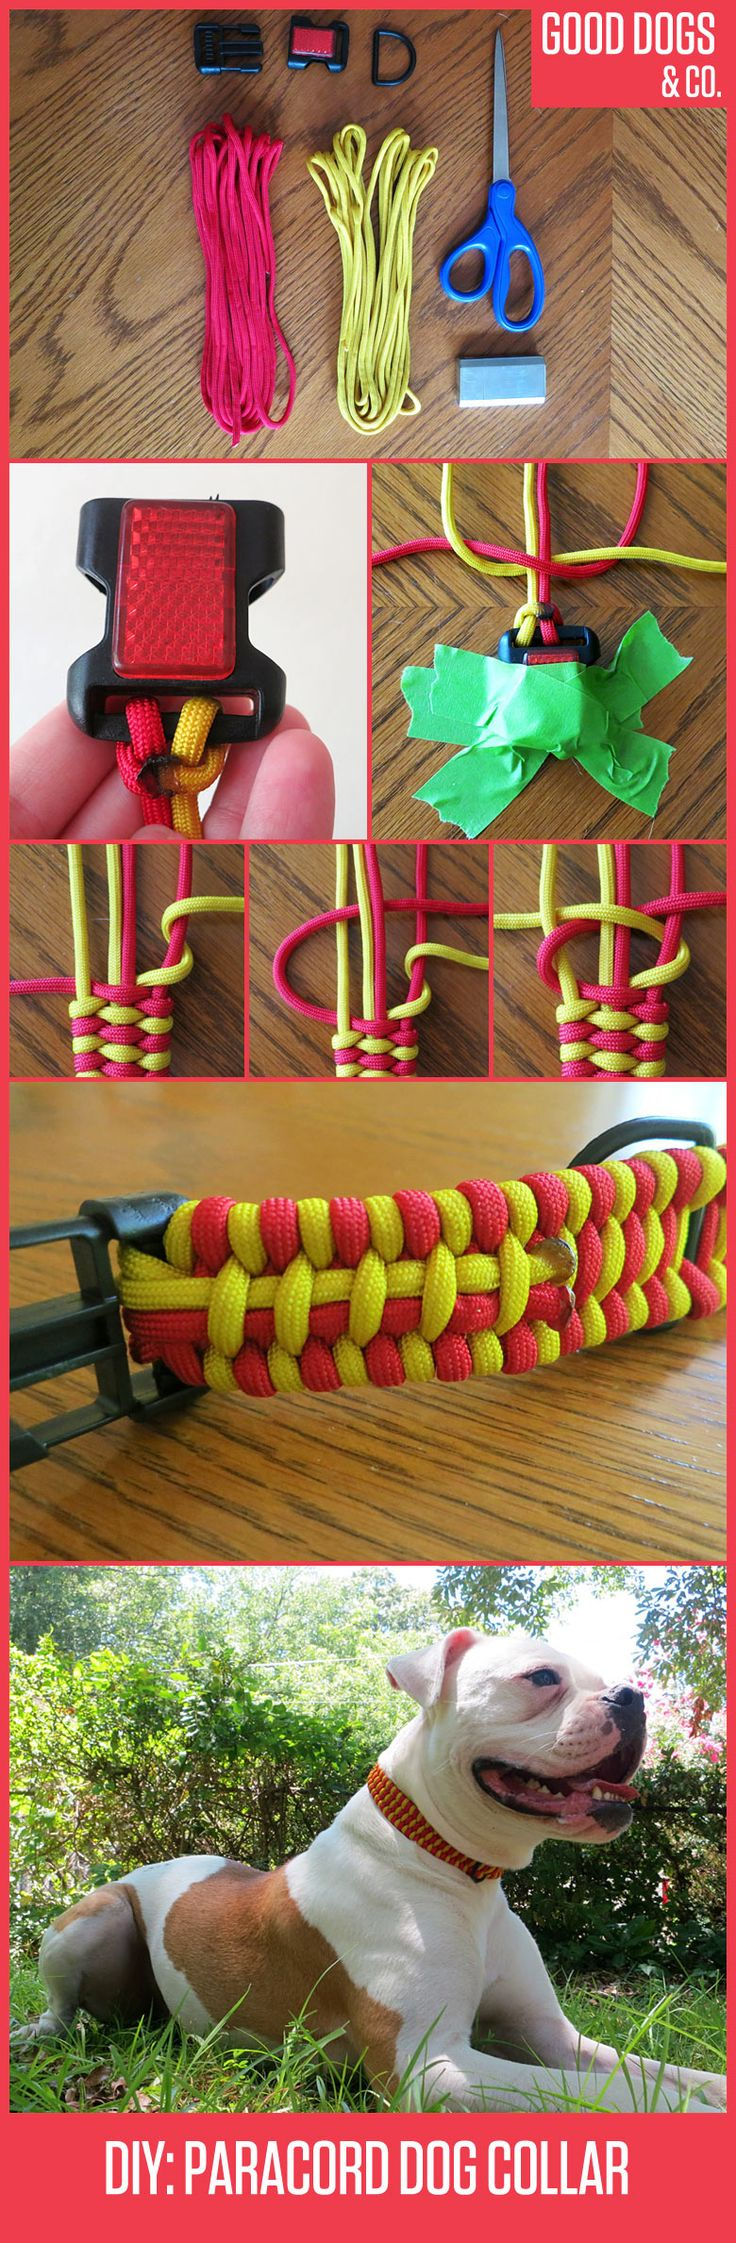 How to braid a paracord survival collar for your dog! Too cool sooo doing this